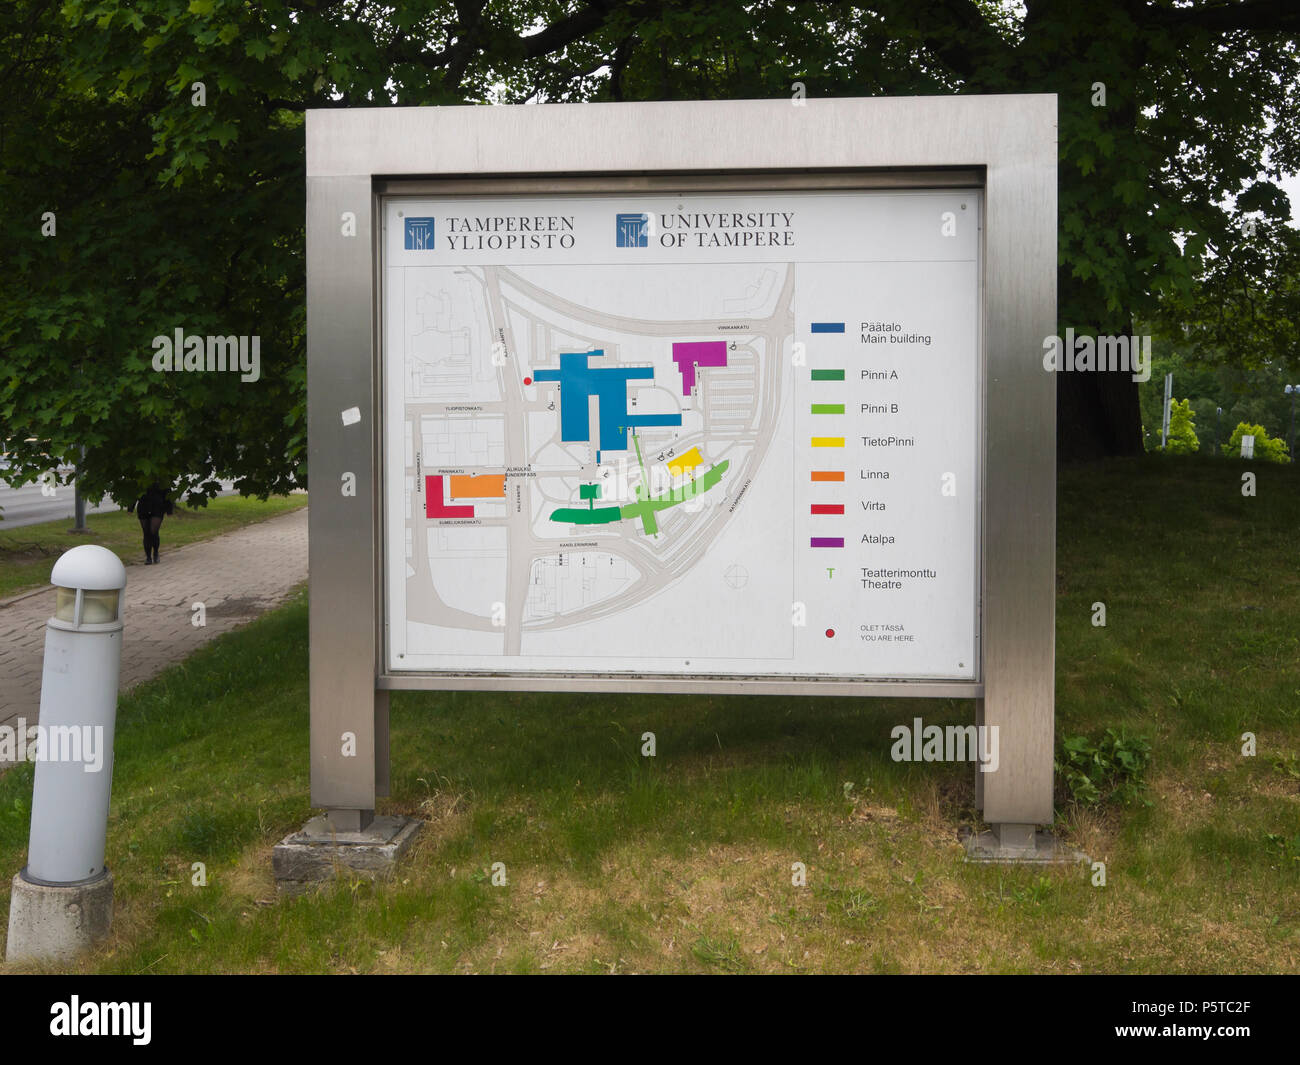 The University of Tampere in Finland, information board at the entrance with overview of the building complex - Stock Image